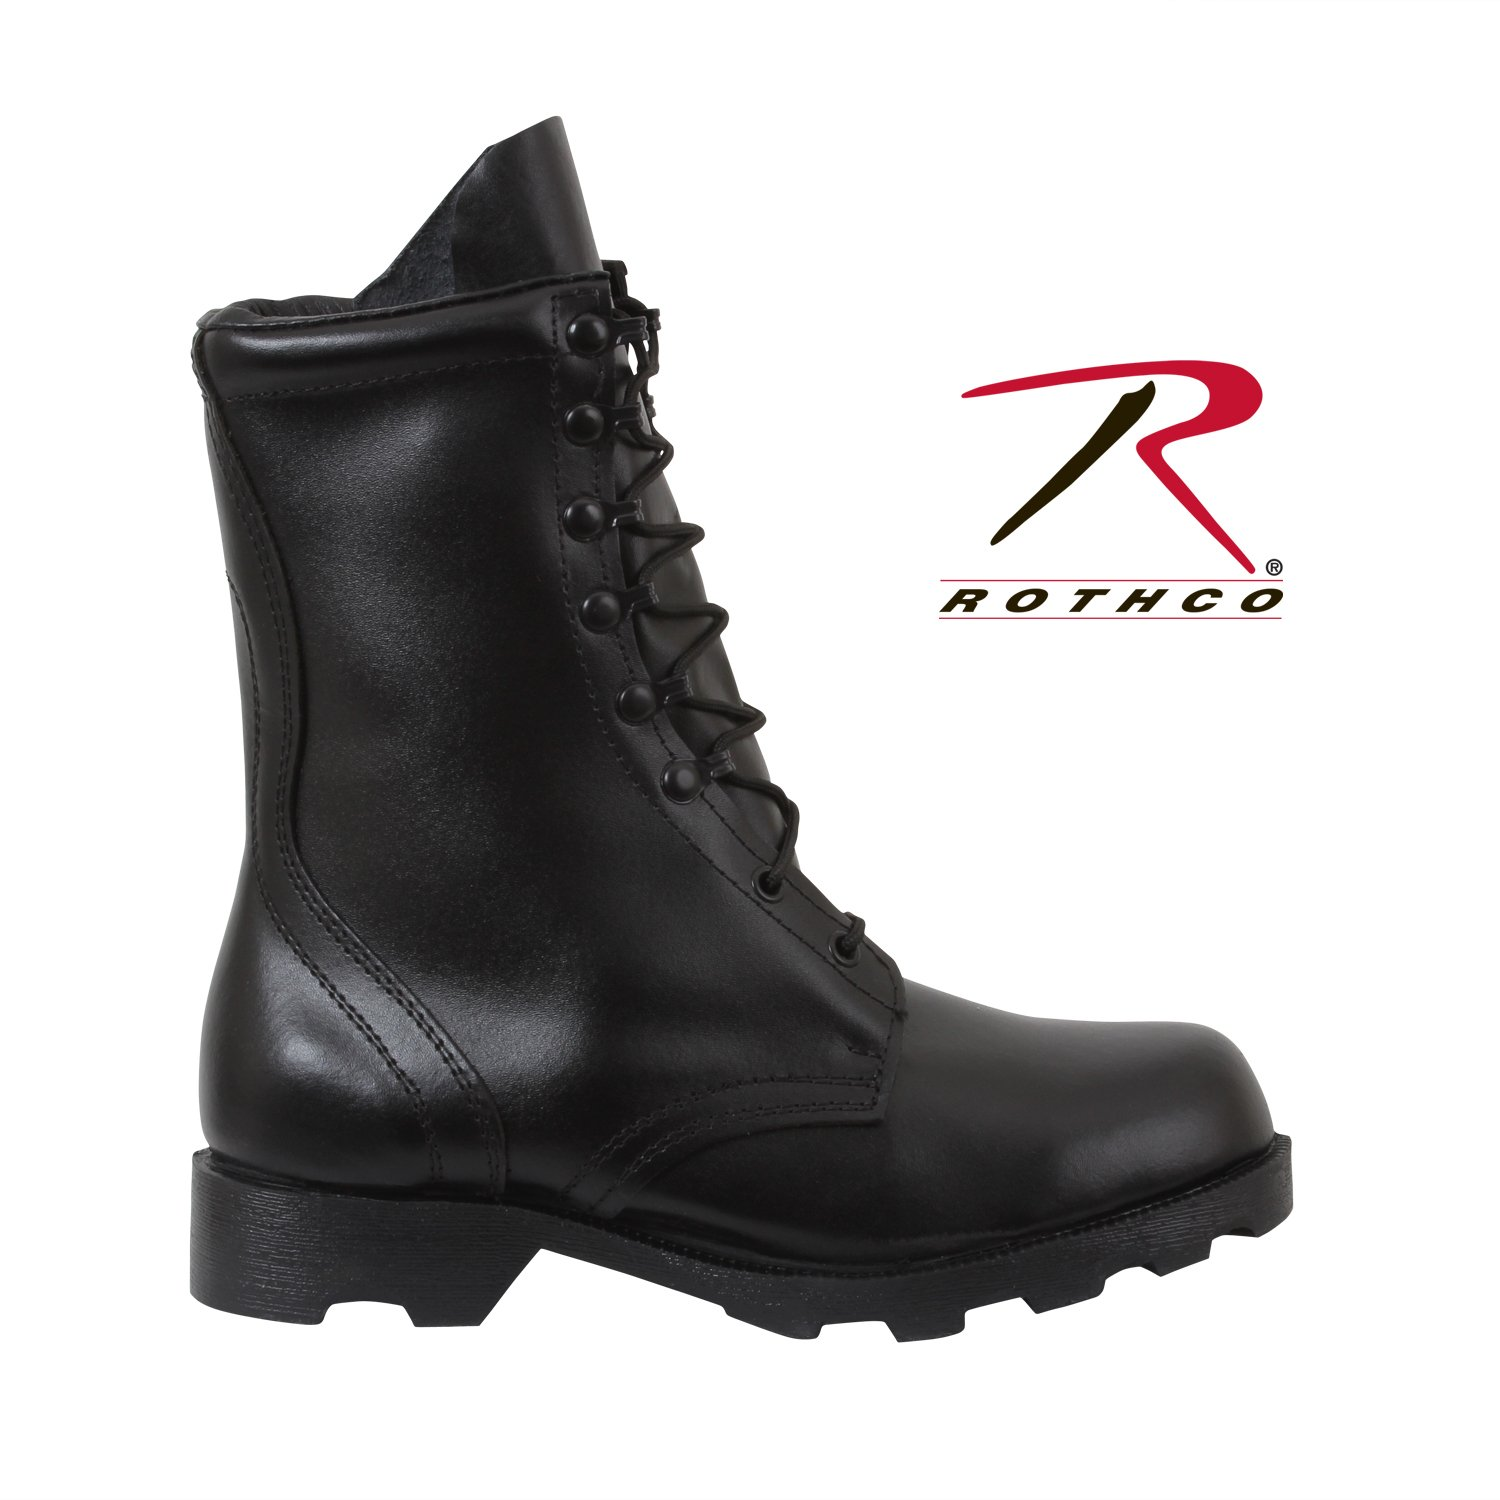 Rothco 10'' Leather Speedlace Combat Boot, Black, 11